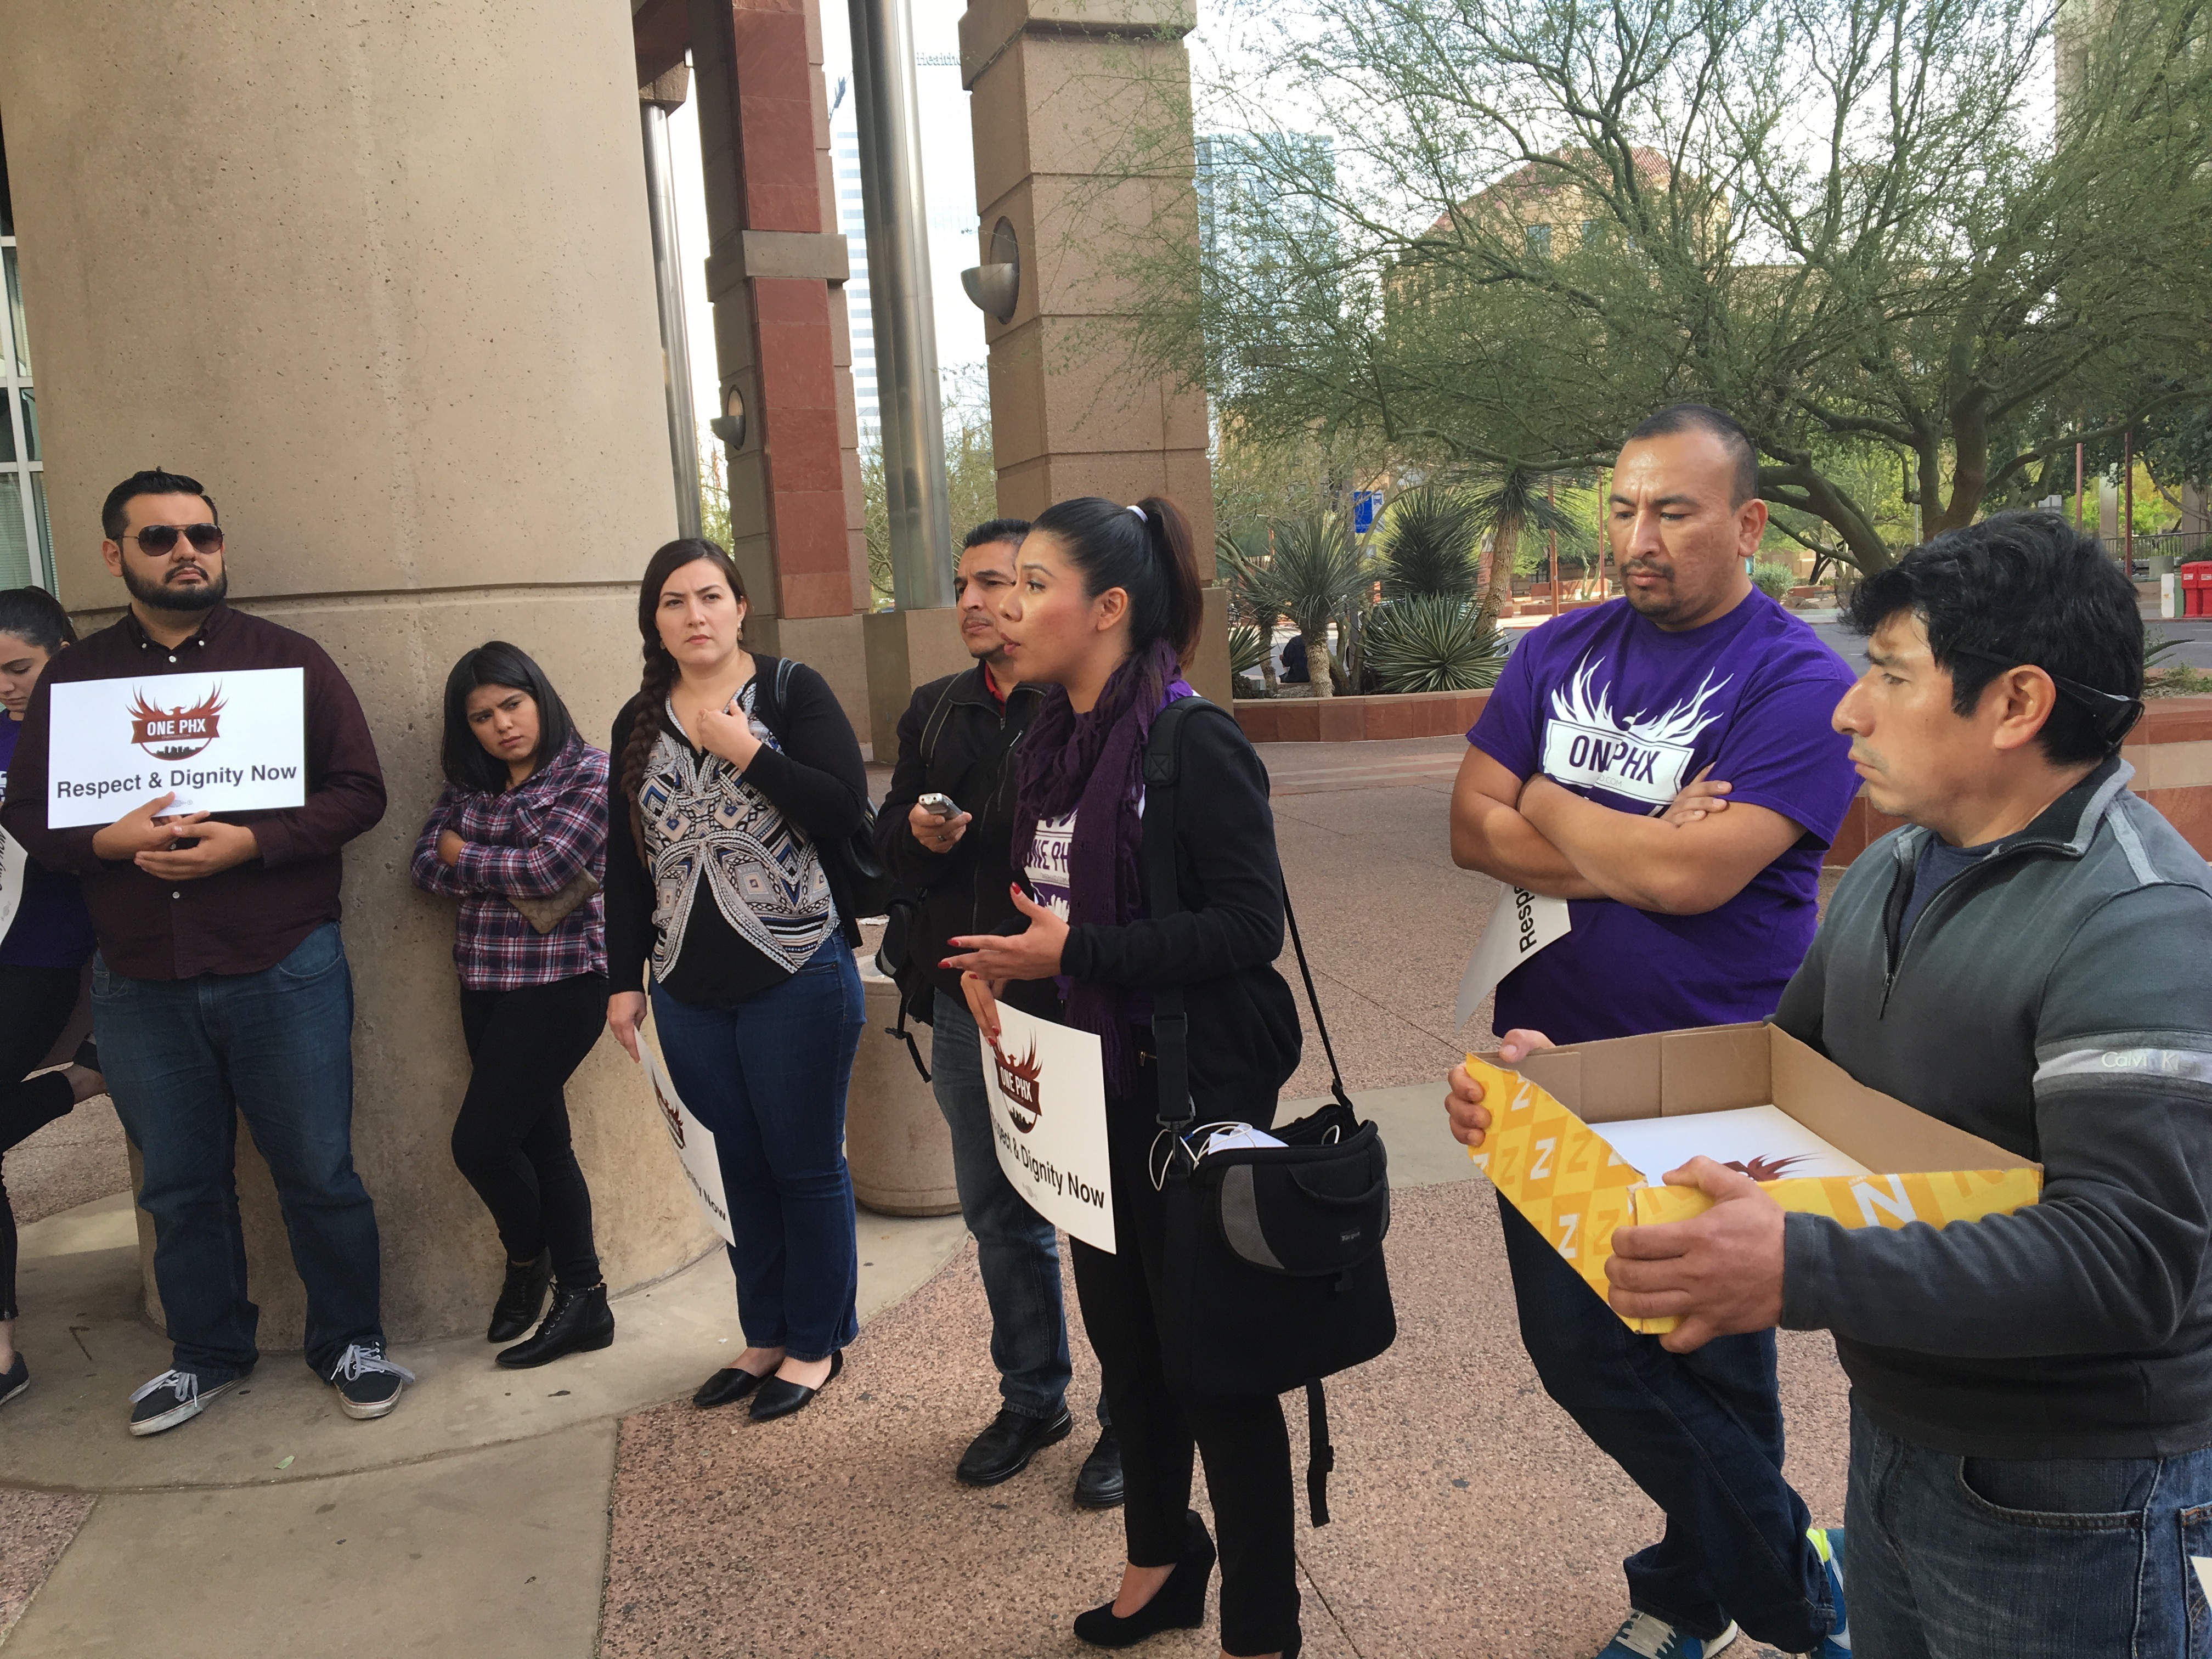 Caption: Viridiana Hernández lobbying at the Arizona State Legislature against the bill that would ban cities from creating their own city ID if that is extended to undocumented immigrants., Credit: Valeria Fernández